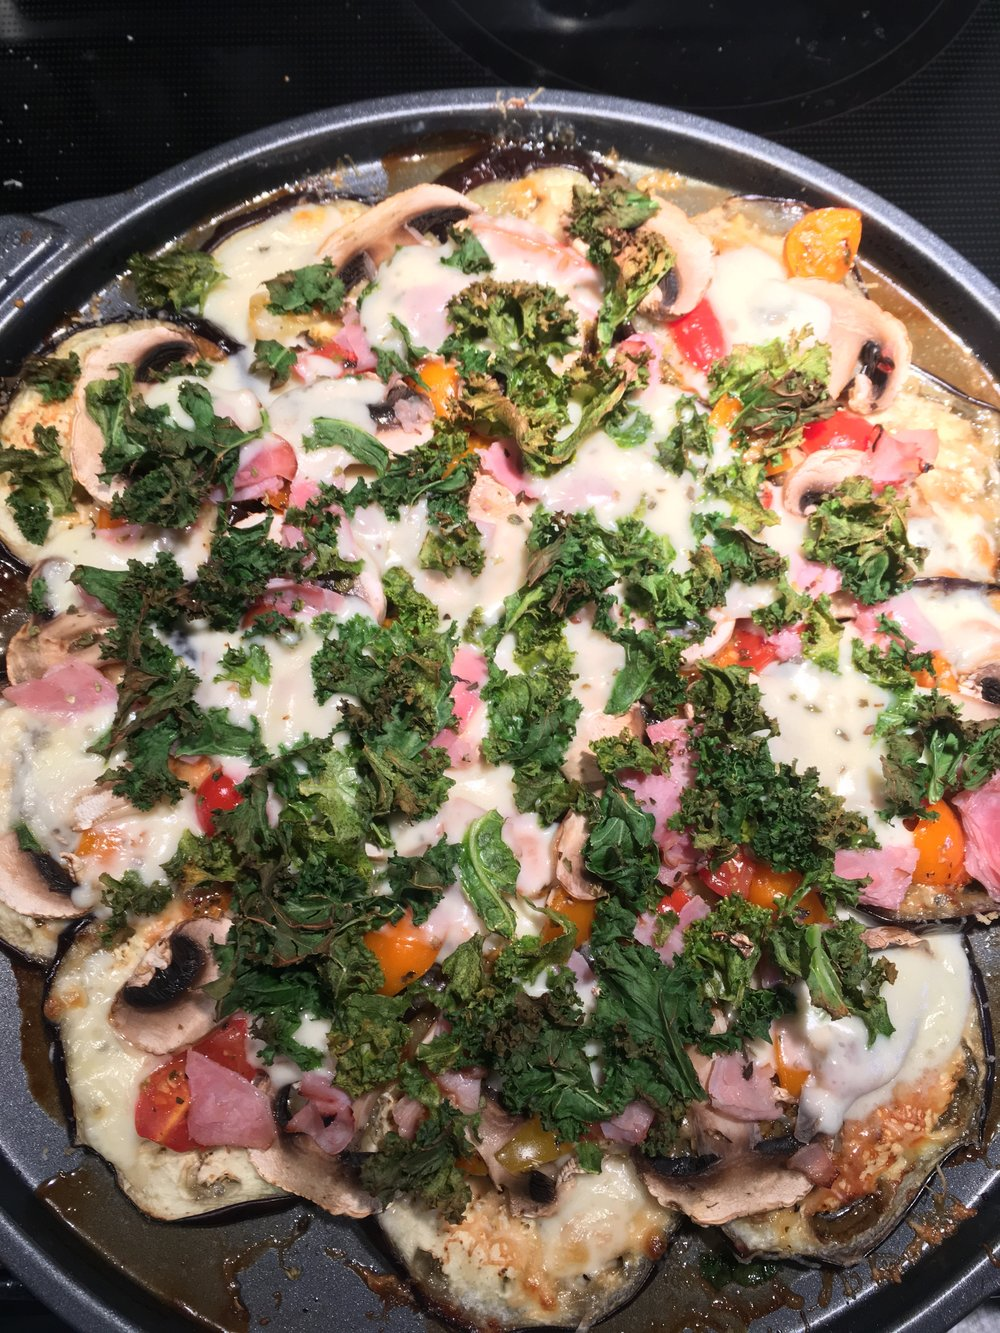 The finished products with mozzarella, ham and kale